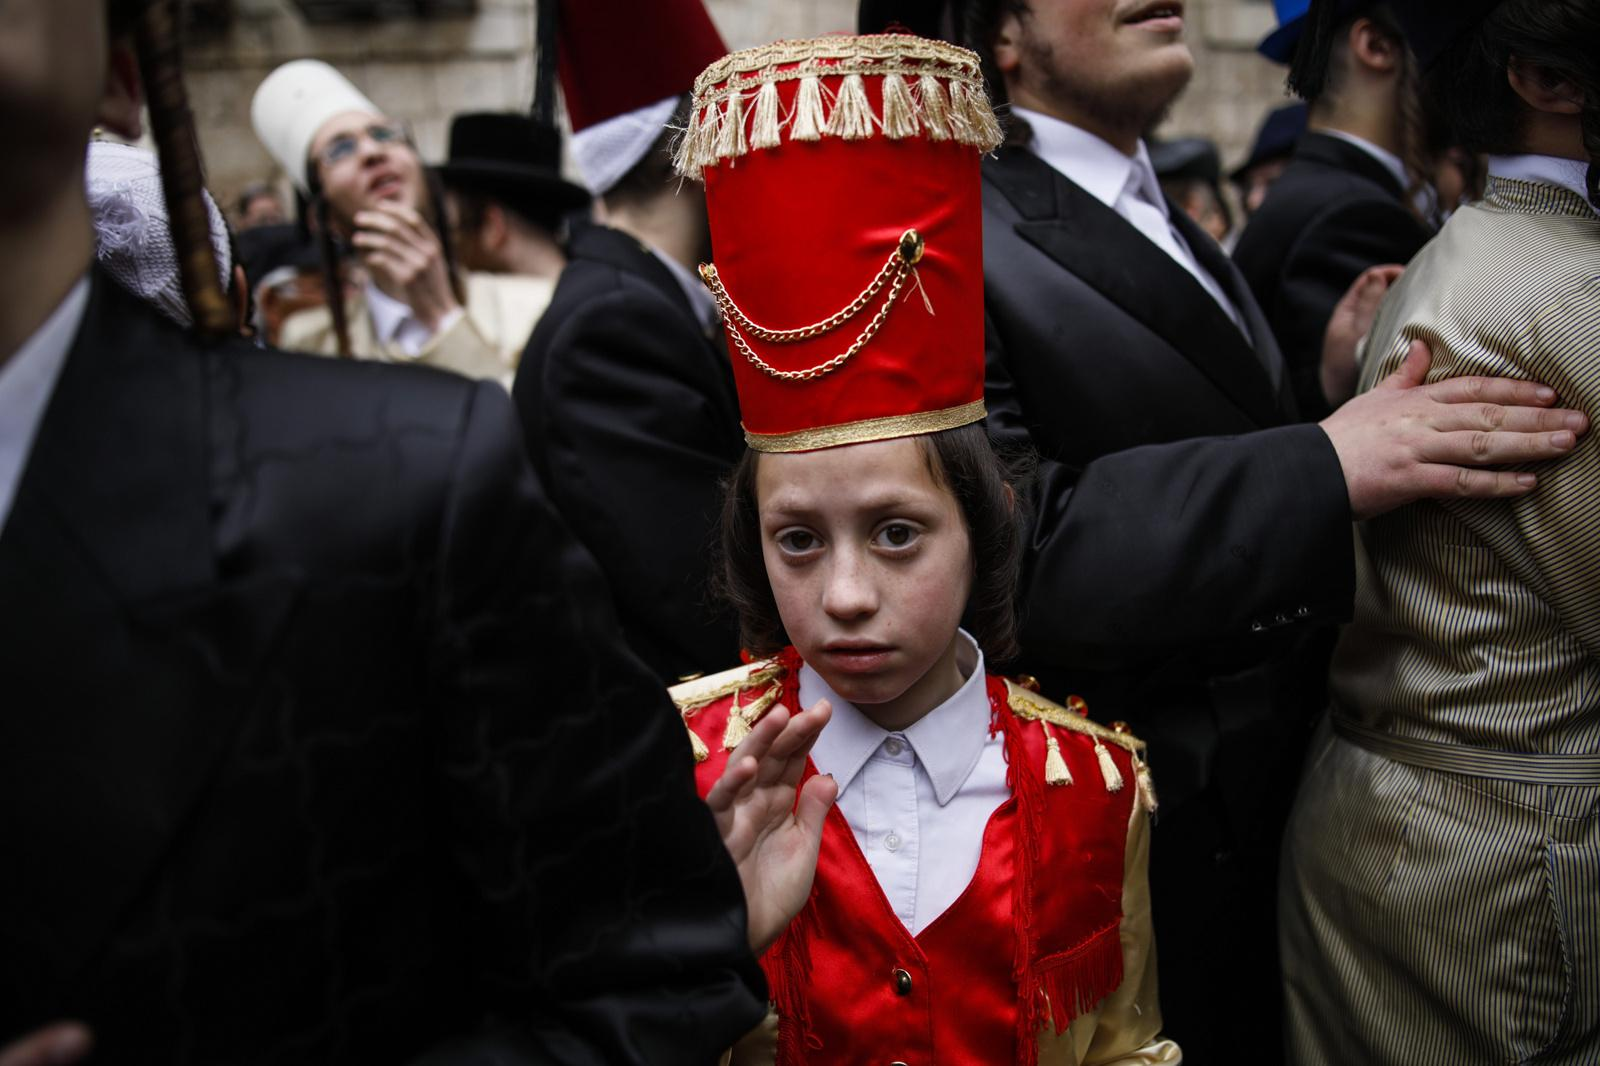 Ultra-Orthodox Jews wearing costumes celebrate the Jewish holiday of Purim in the ultra-Orthodox neighborhood of Mea Shearim in Jerusalem, Israel, March 13, 2017. The Jewish holiday of Purim celebrates the Jews' salvation from genocide in ancient Persia, as recounted in the Book of Esther.